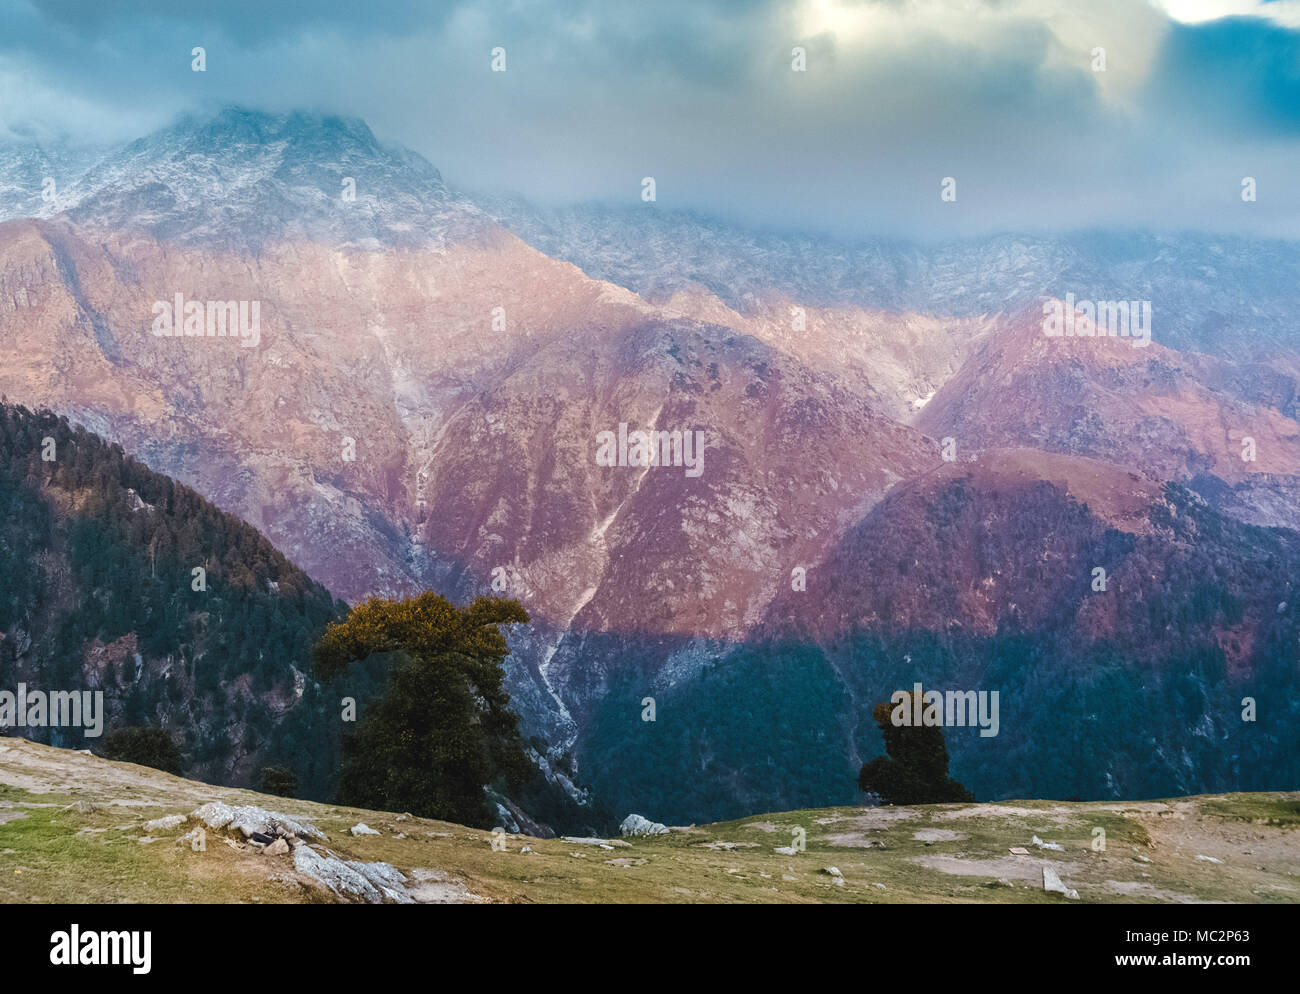 View of the Dhauladhar Mountain Range from Triund Hill, Himachal Pradesh, India - Stock Image